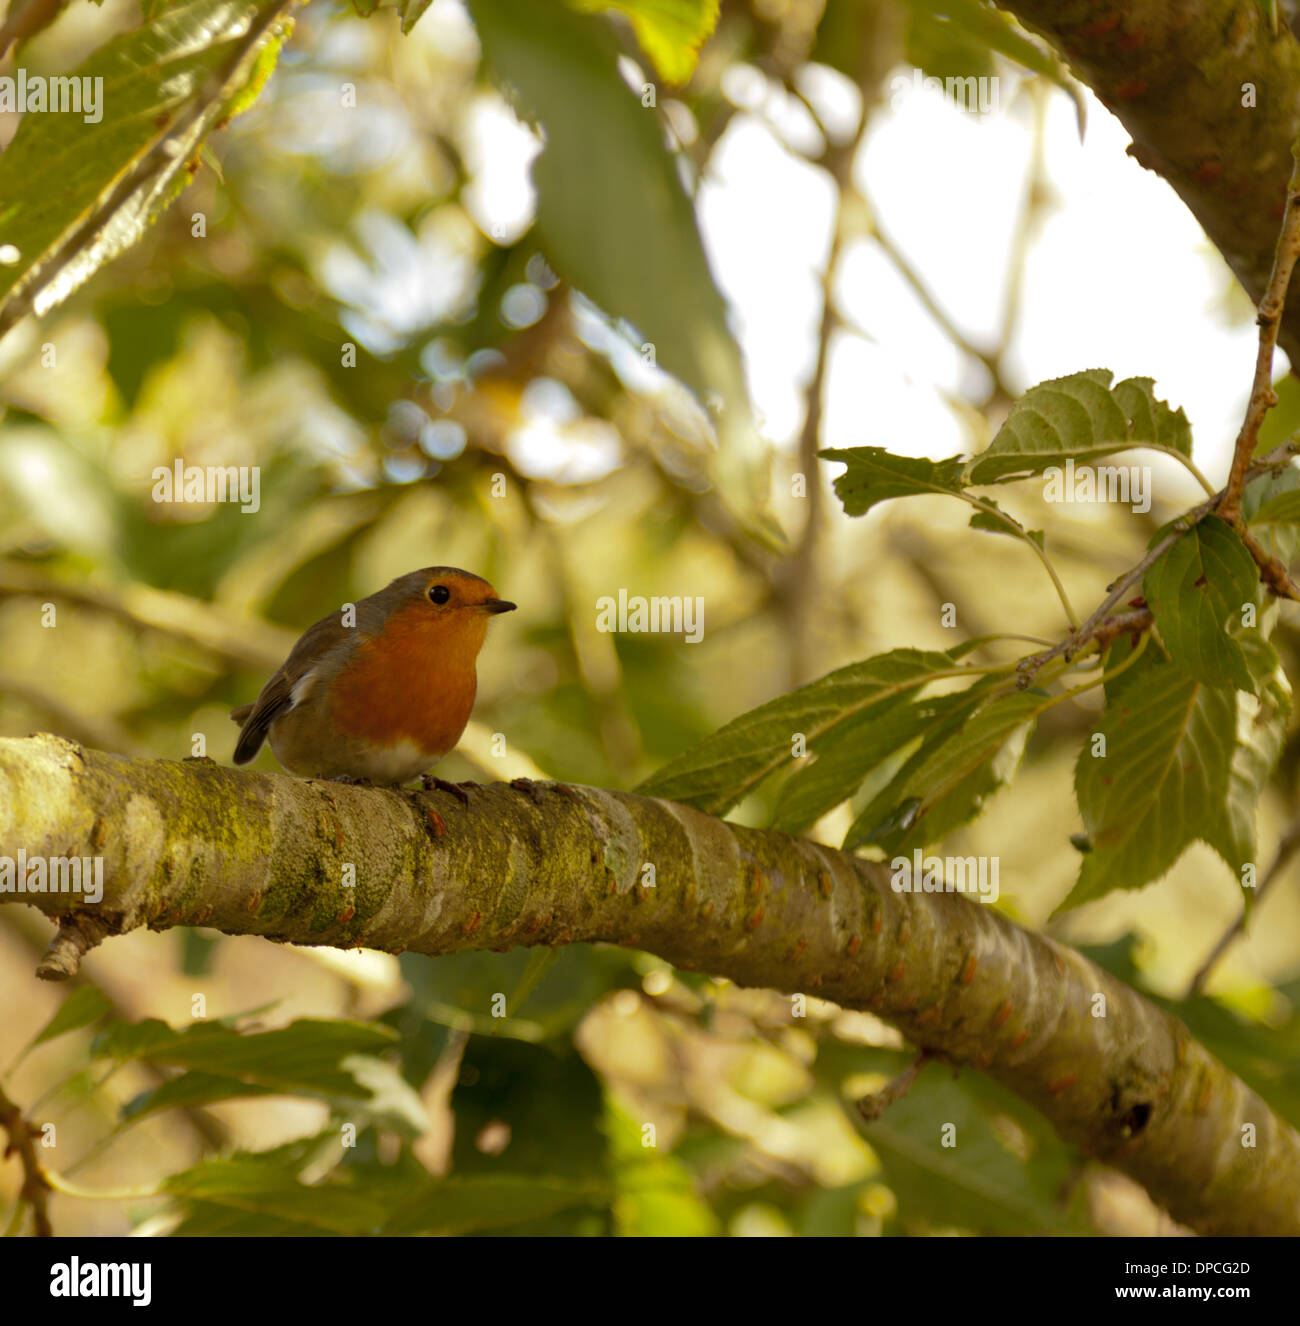 A robin Erithacus rubecula perched in a tree, Coughton Court Garden, Alcester, Warwickshire, UK. - Stock Image